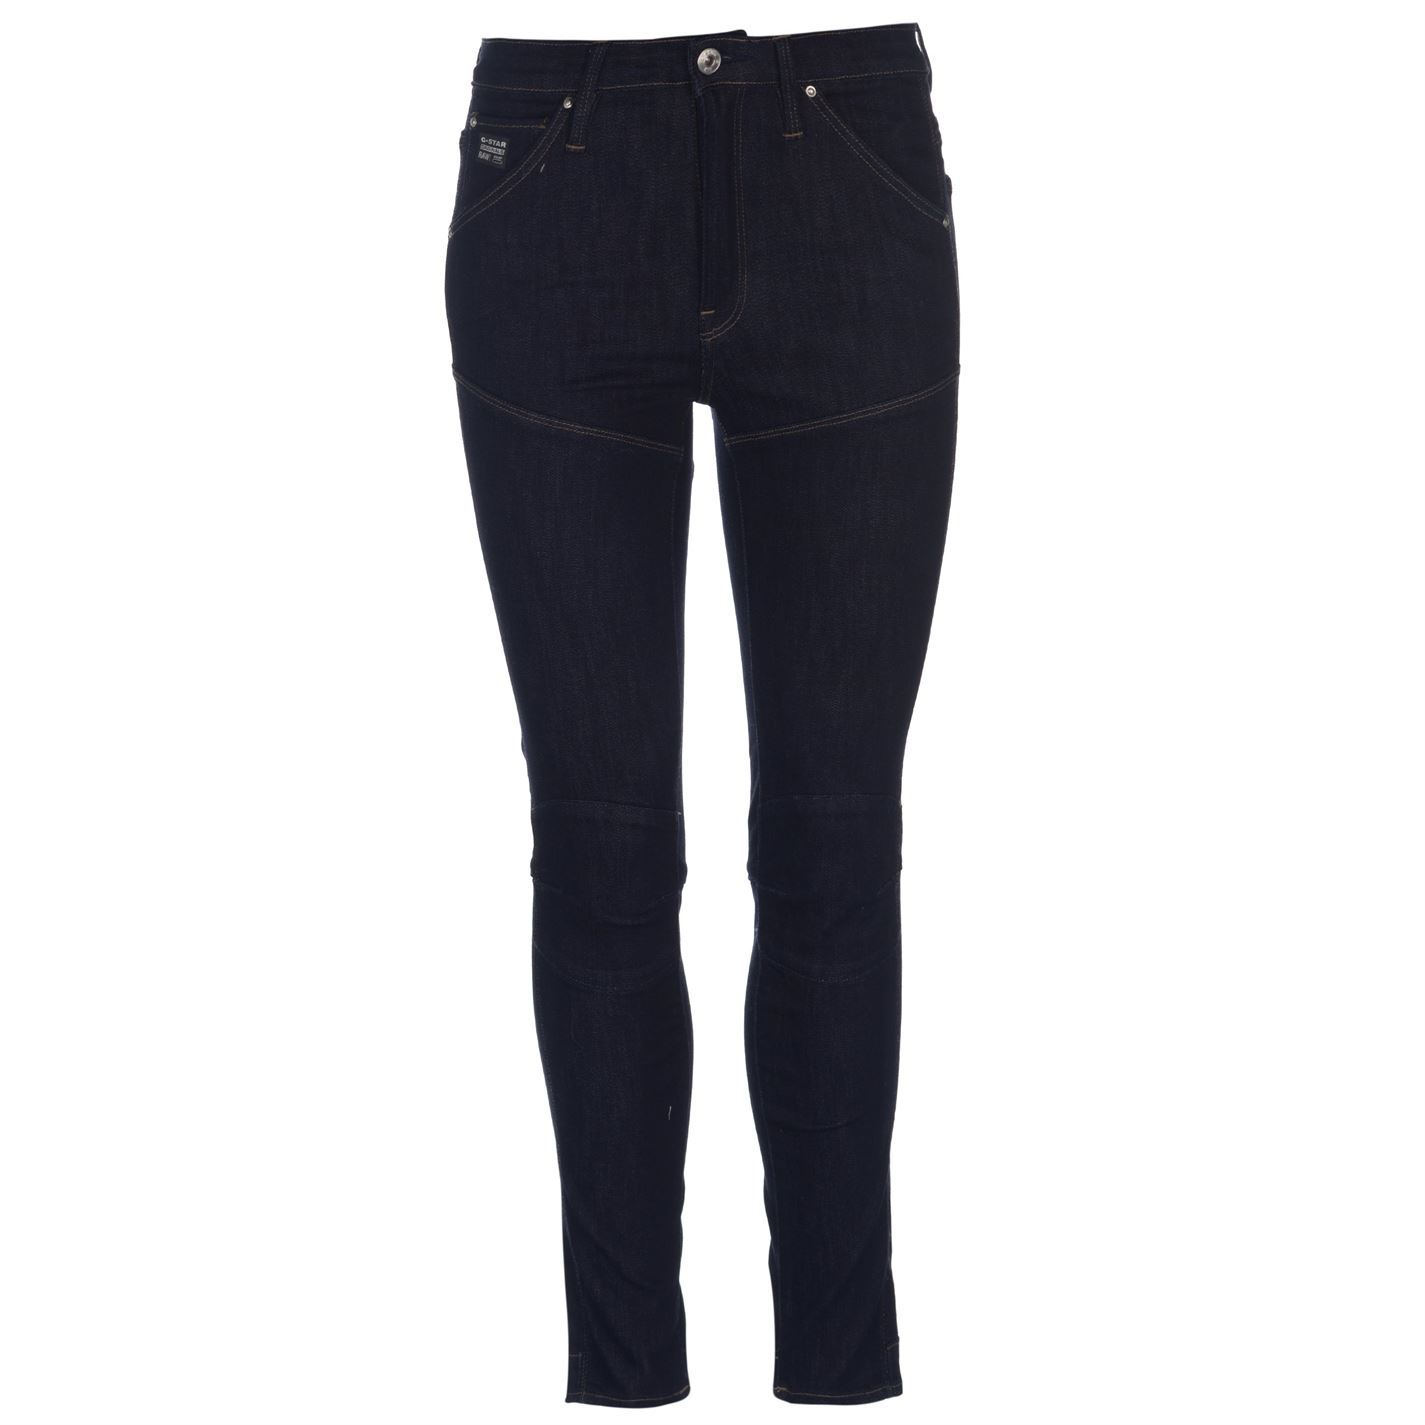 G-Star-Womens-5620-Ultra-High-Super-Skinny-Jeans-Straight-Pants-Trousers-Bottoms